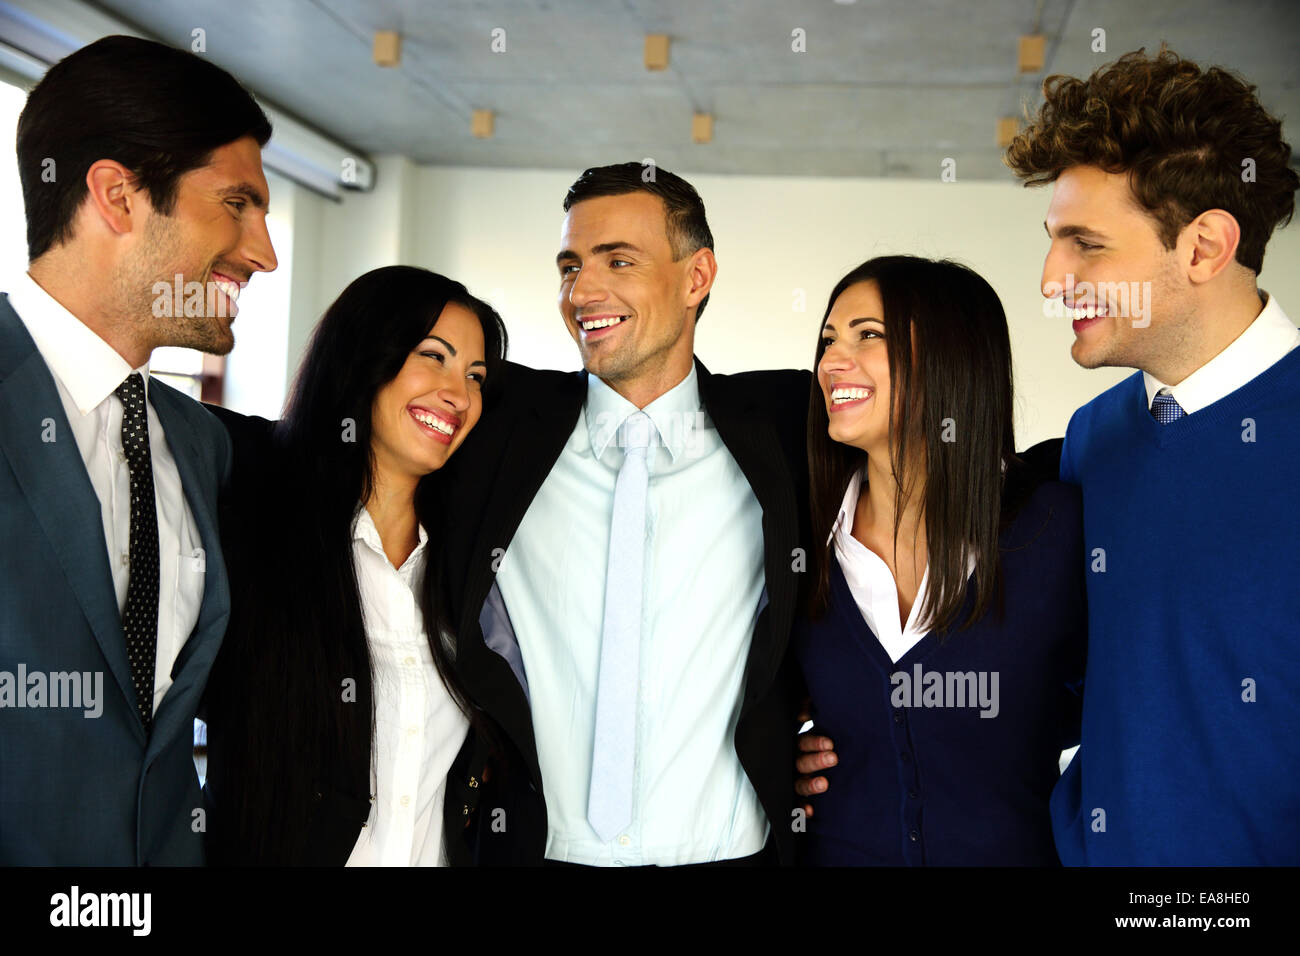 Cheerful businesspeople standing in office and looking at each other Stock Photo